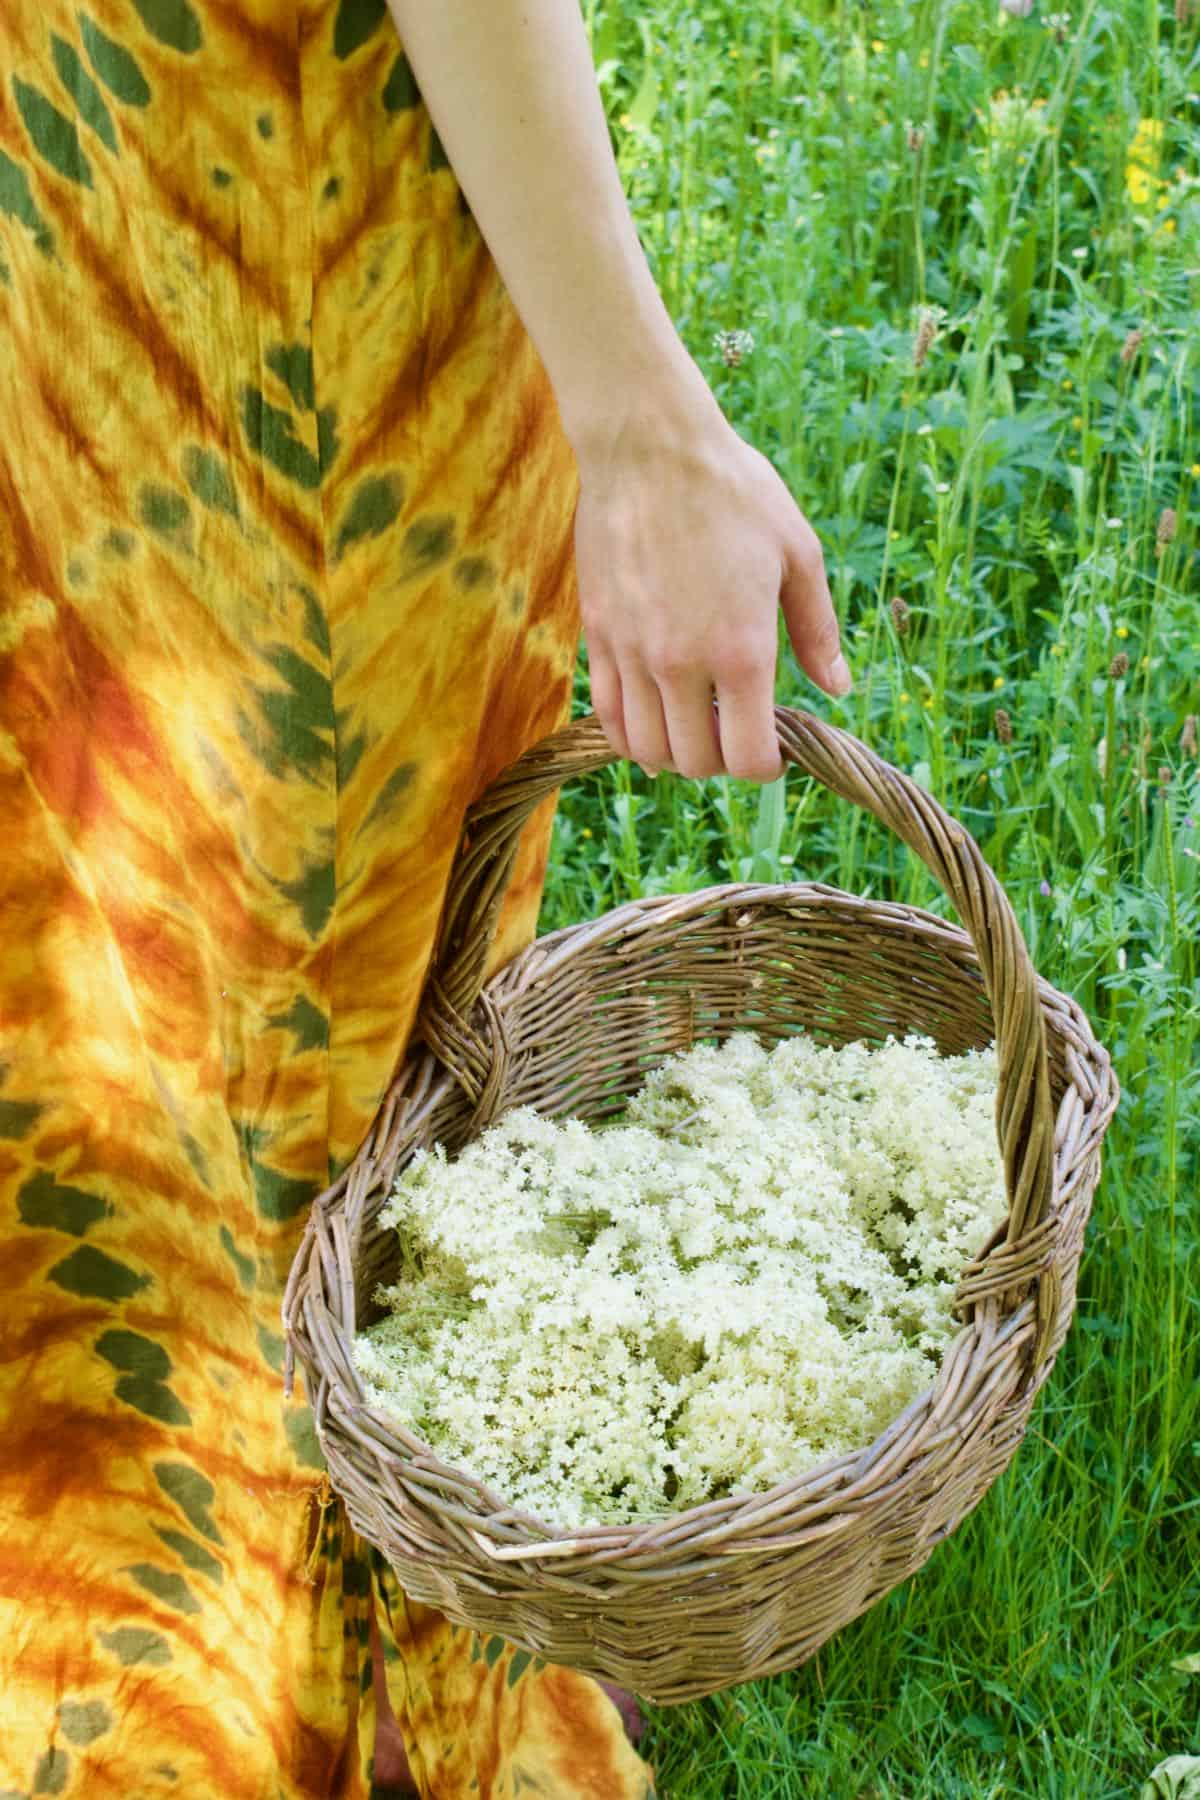 Walking in meadow with a basket full of elderflowers